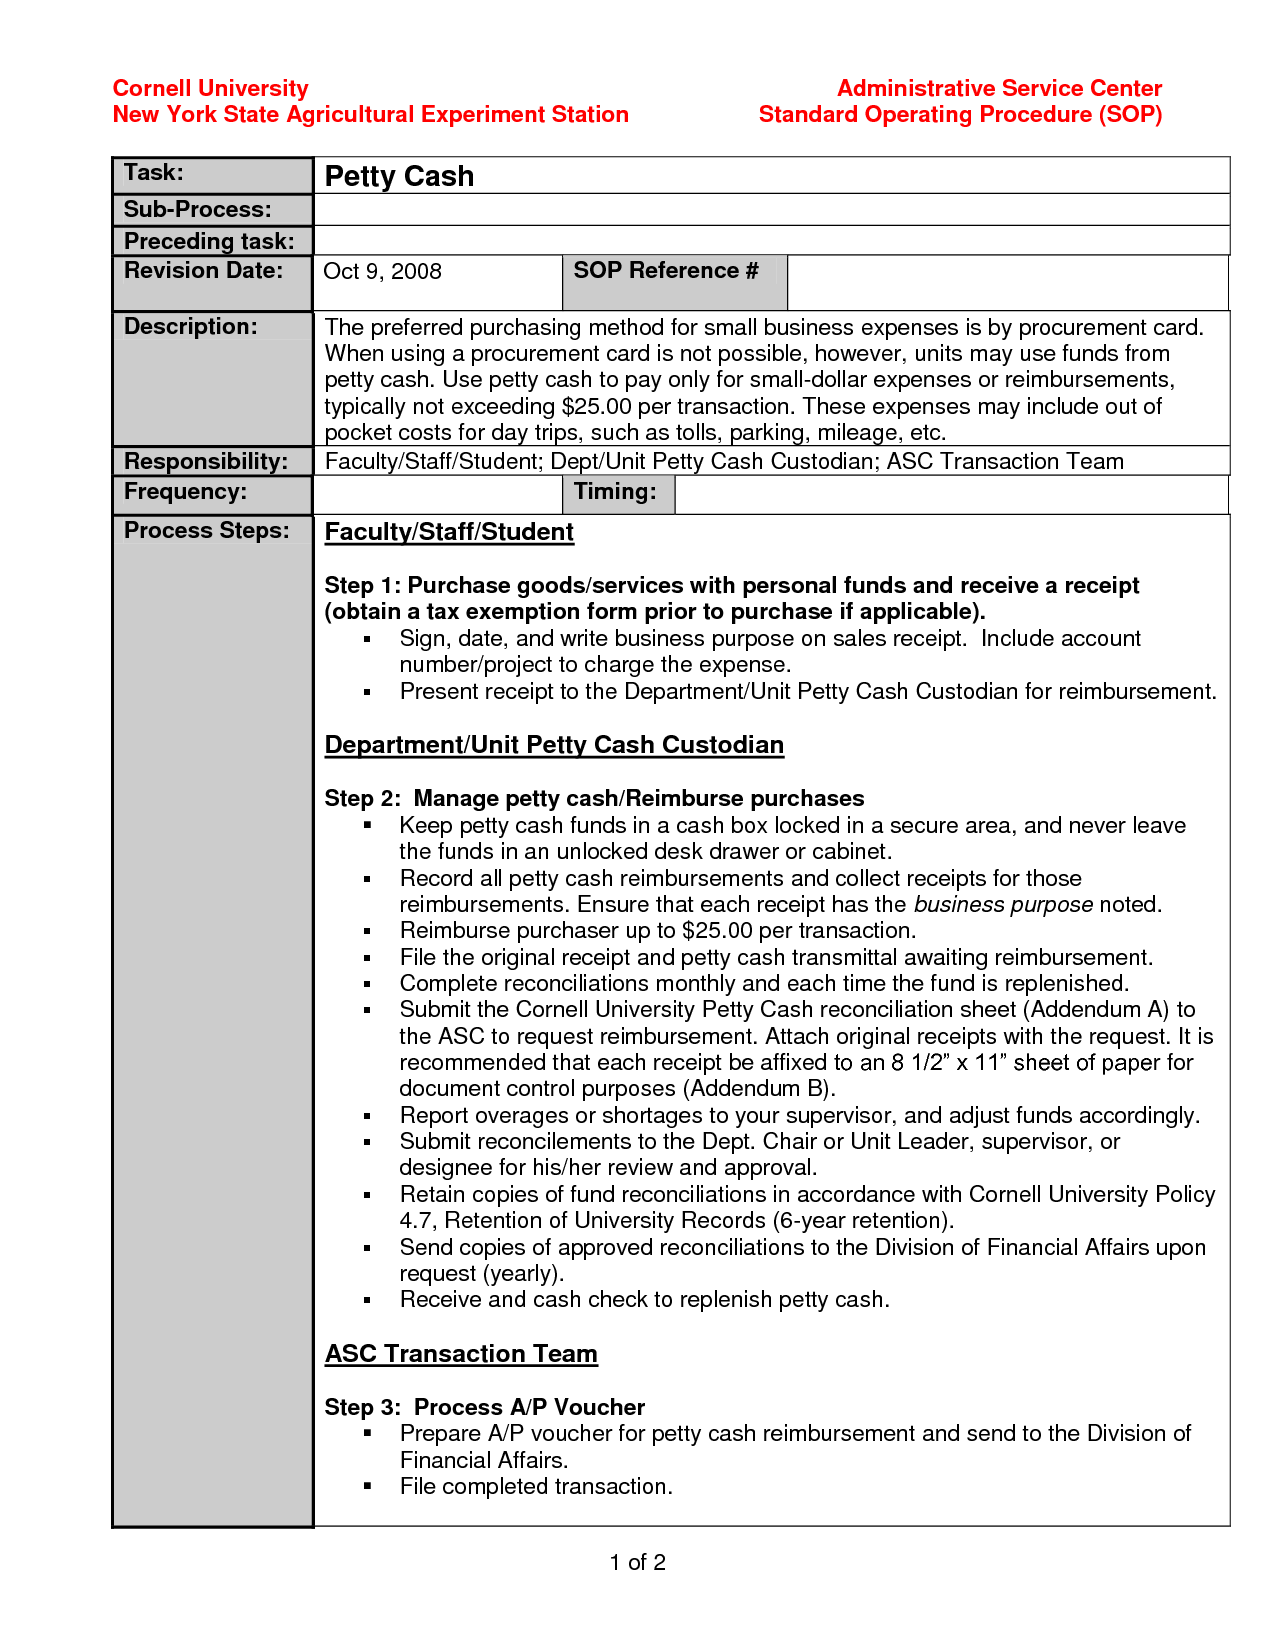 Standard Operating Procedure Sop Template Doc